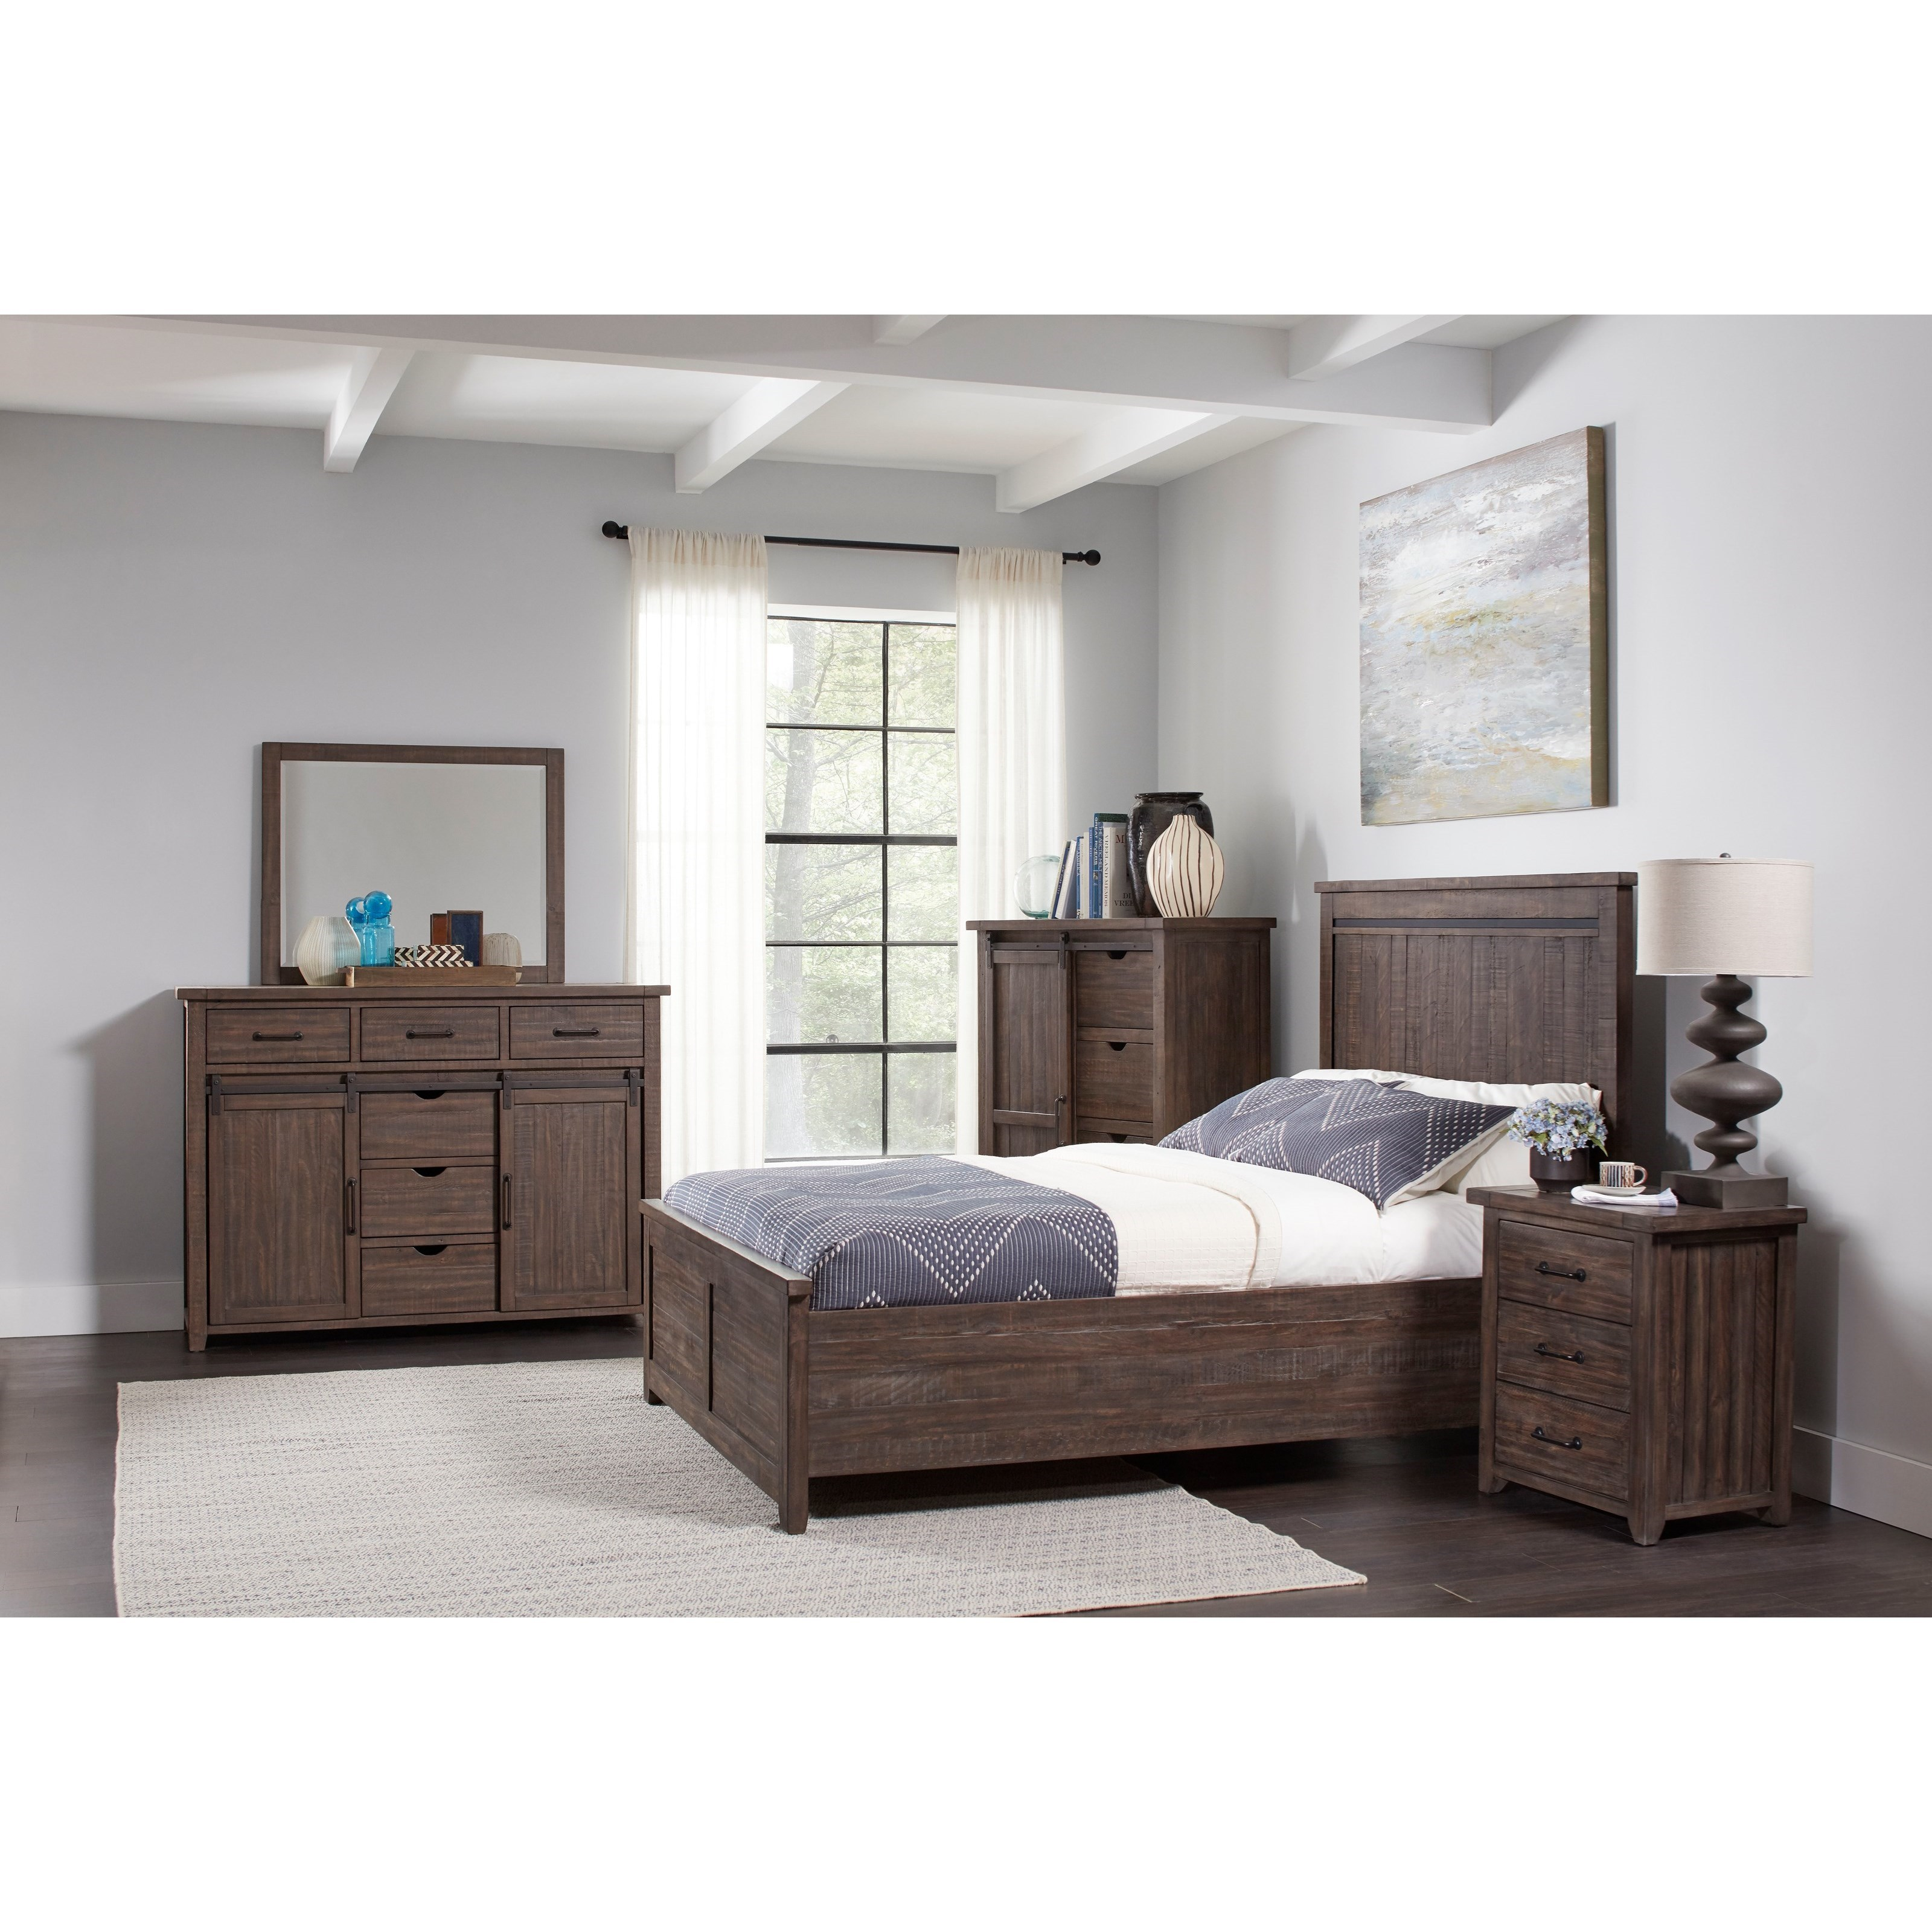 Madison County Queen Bedroom Group by Jofran at Lapeer Furniture & Mattress Center